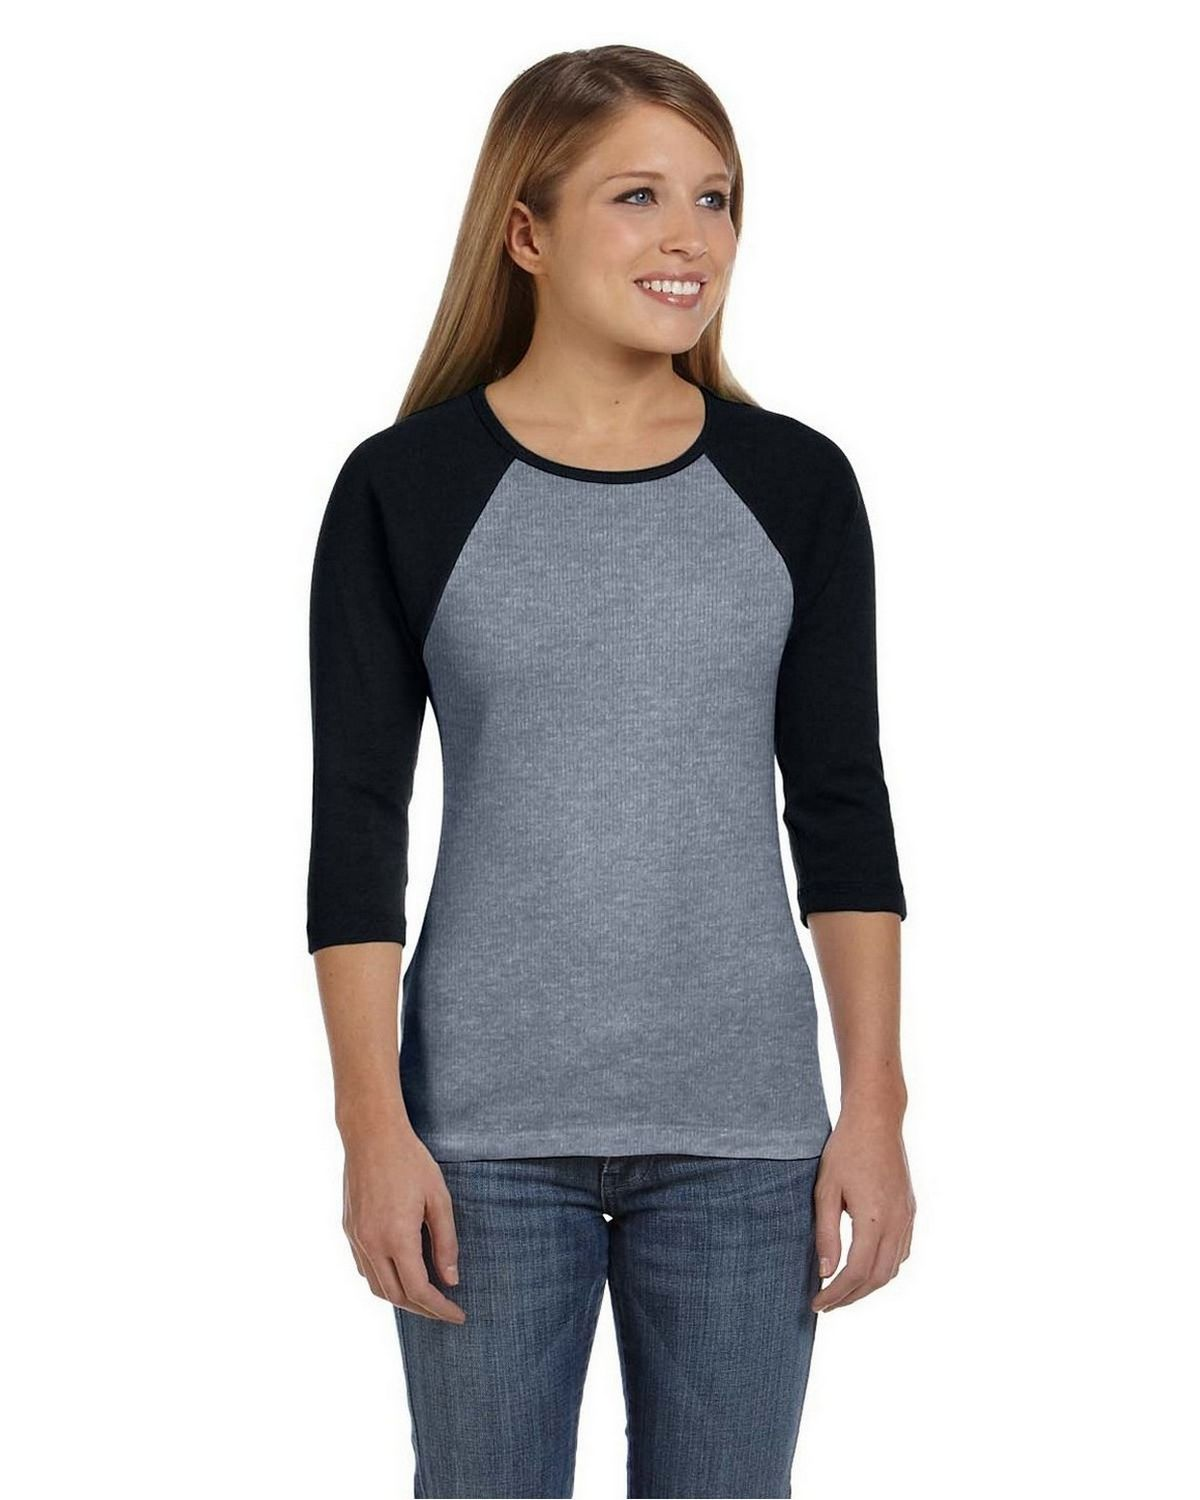 Bella + Canvas B2000 Ladies Baby Rib Contrast Raglan T-Shirt - Deep Heather/Blk - XL B2000